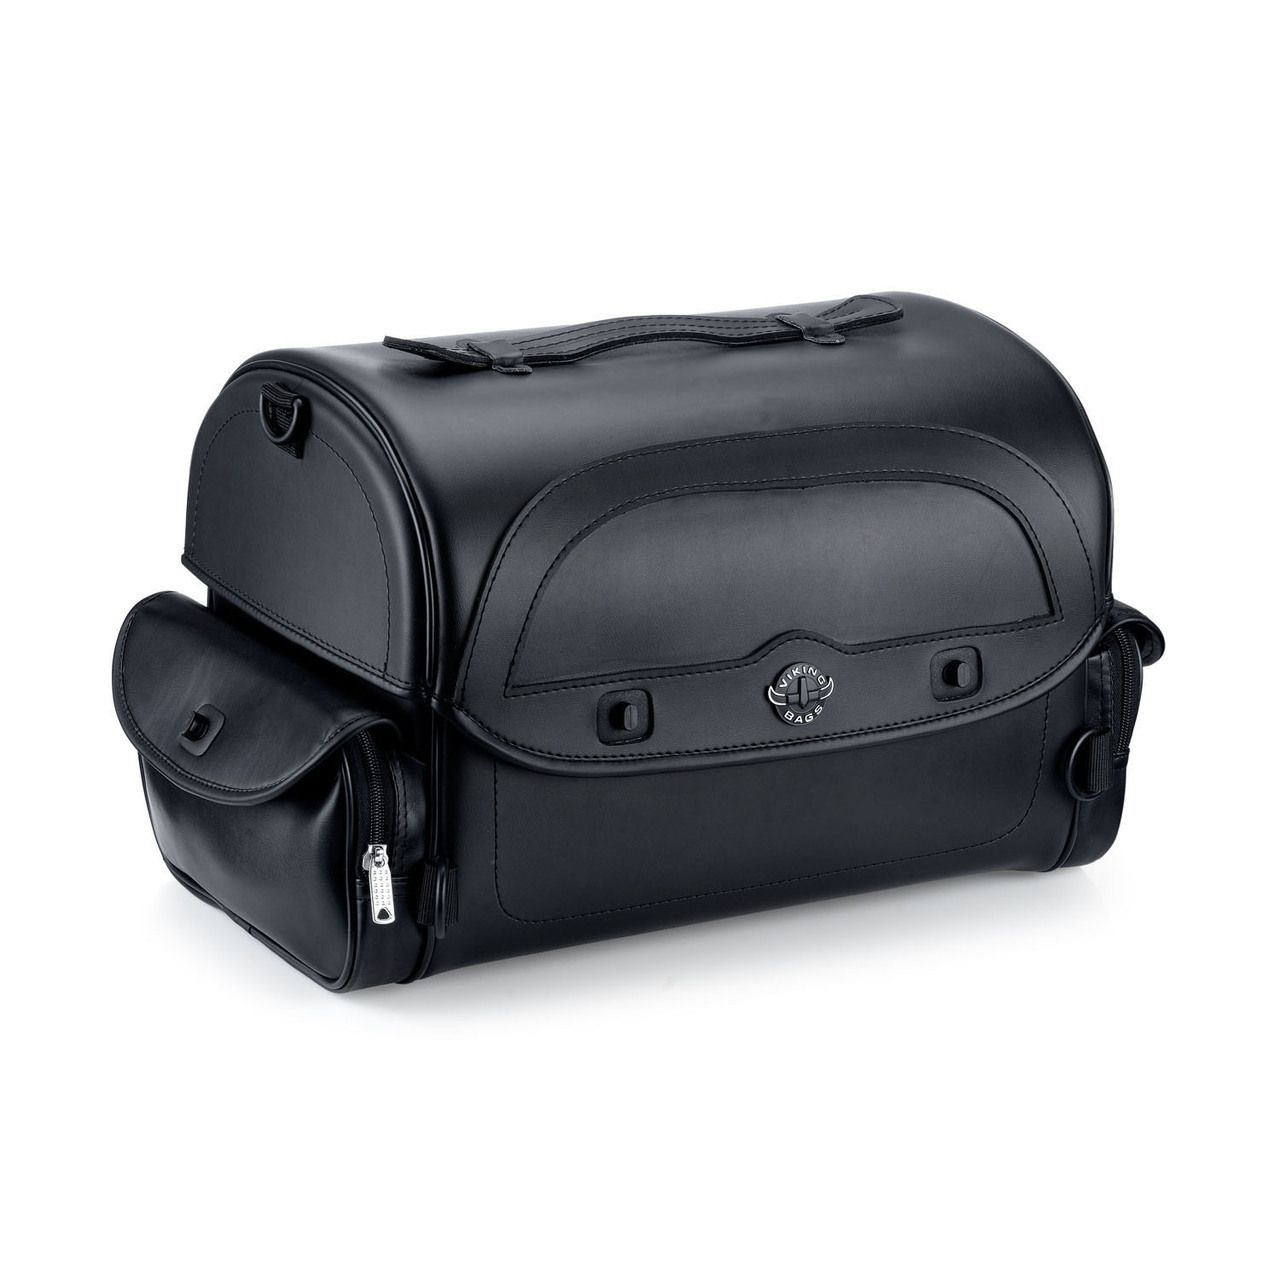 Warrior Black Leather Plain Motorcycle Tail Bag We Offer Luggage And Bags For Motorcycles Hard Saddle Lowest Prices